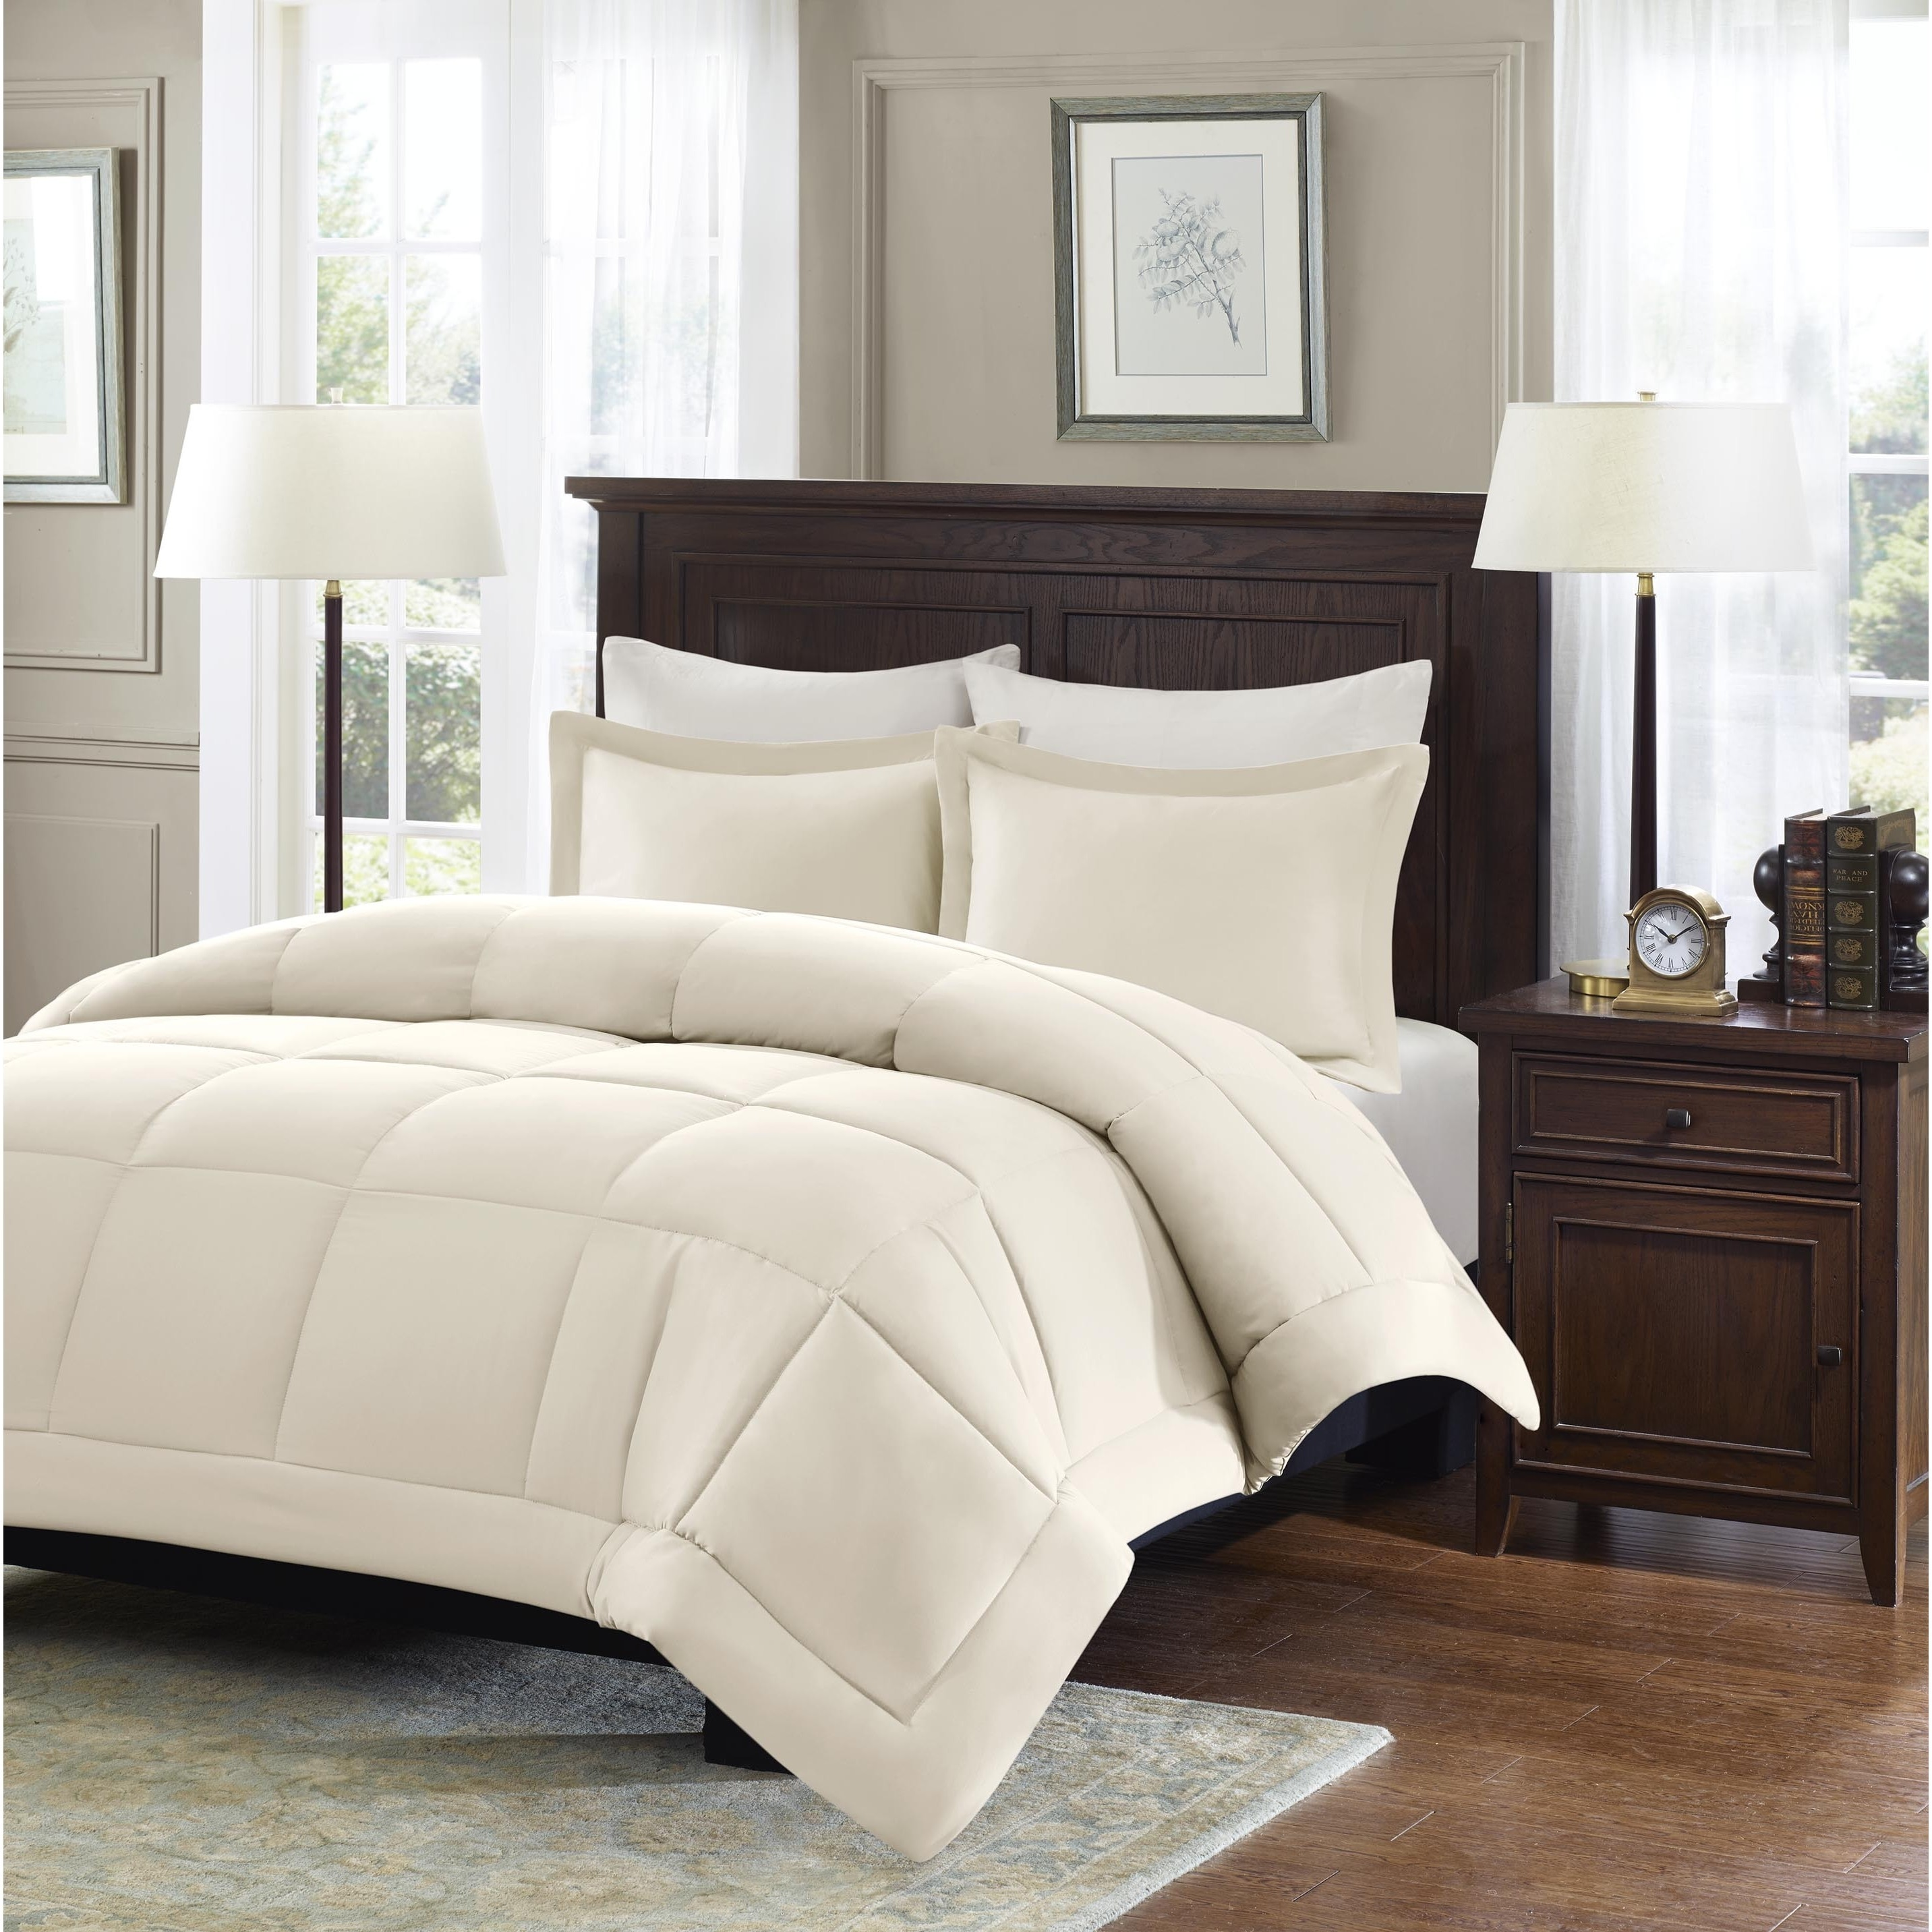 insert box fill power twin loops down white hypoallergenic comforter luxurious with polyester lutwsiwhgodo king warranty weight corner size siliconized goose fiberfill lifetime baffle duvet design plush alternative oz